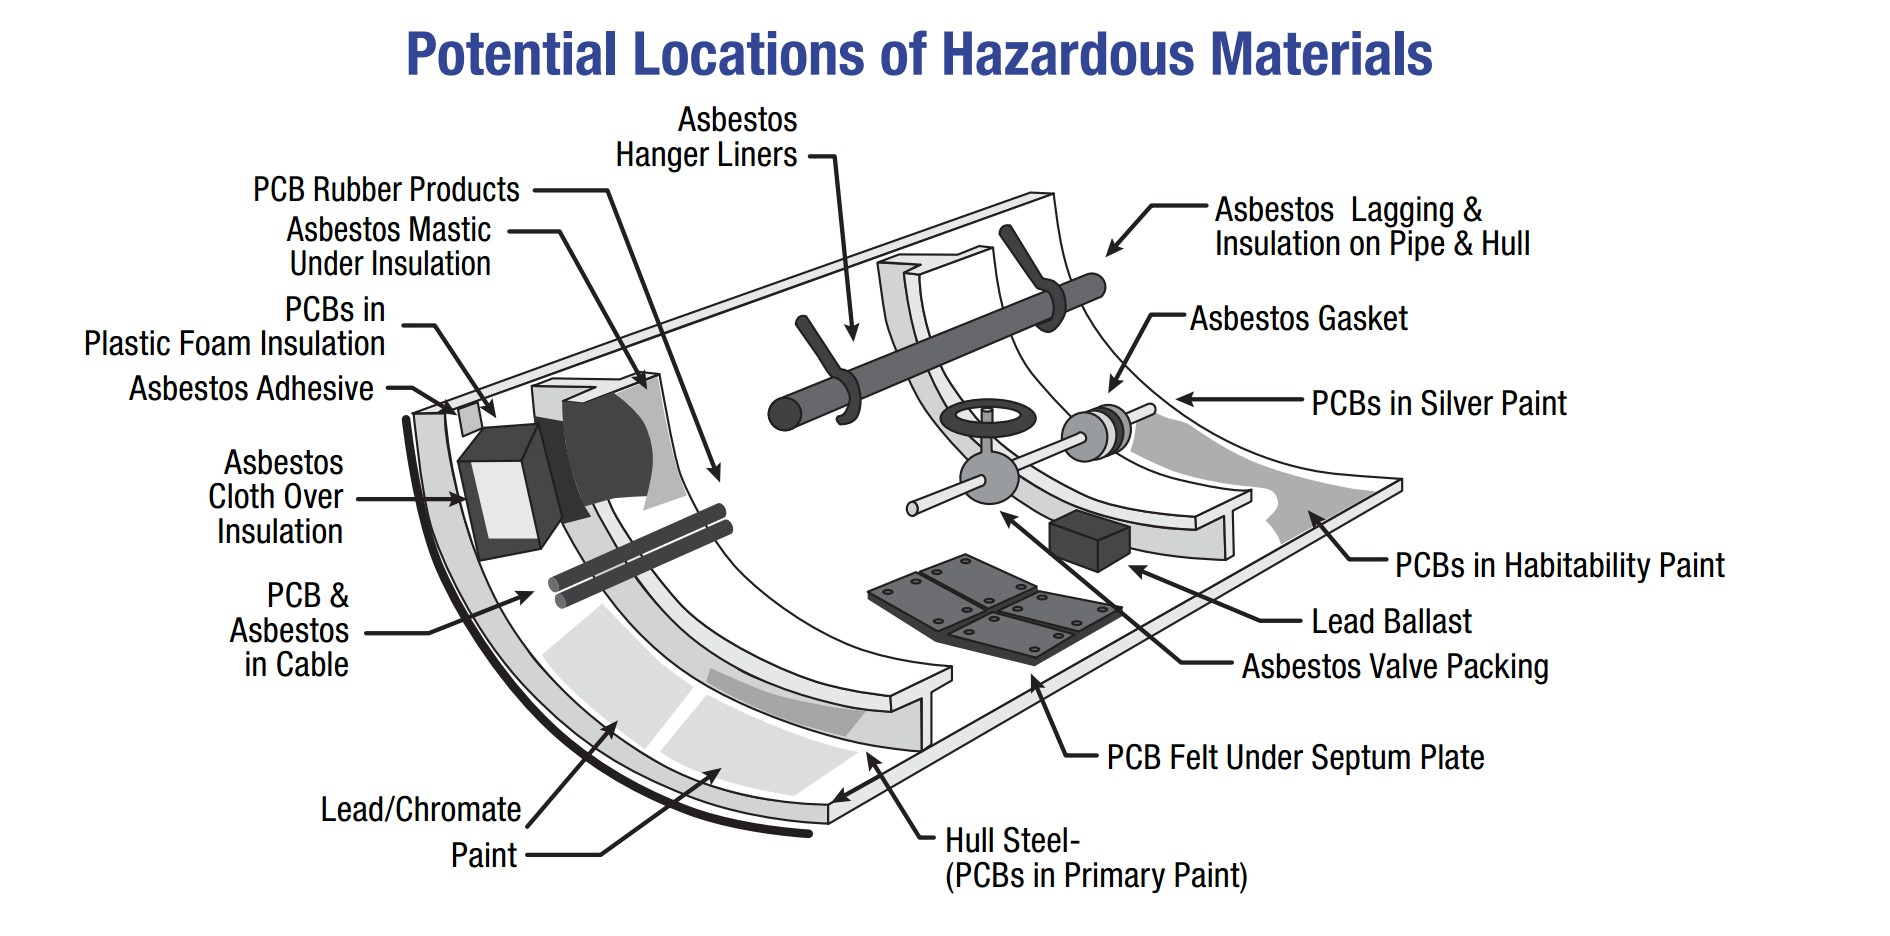 hazardous-materials-location-copyright-osha-gov_